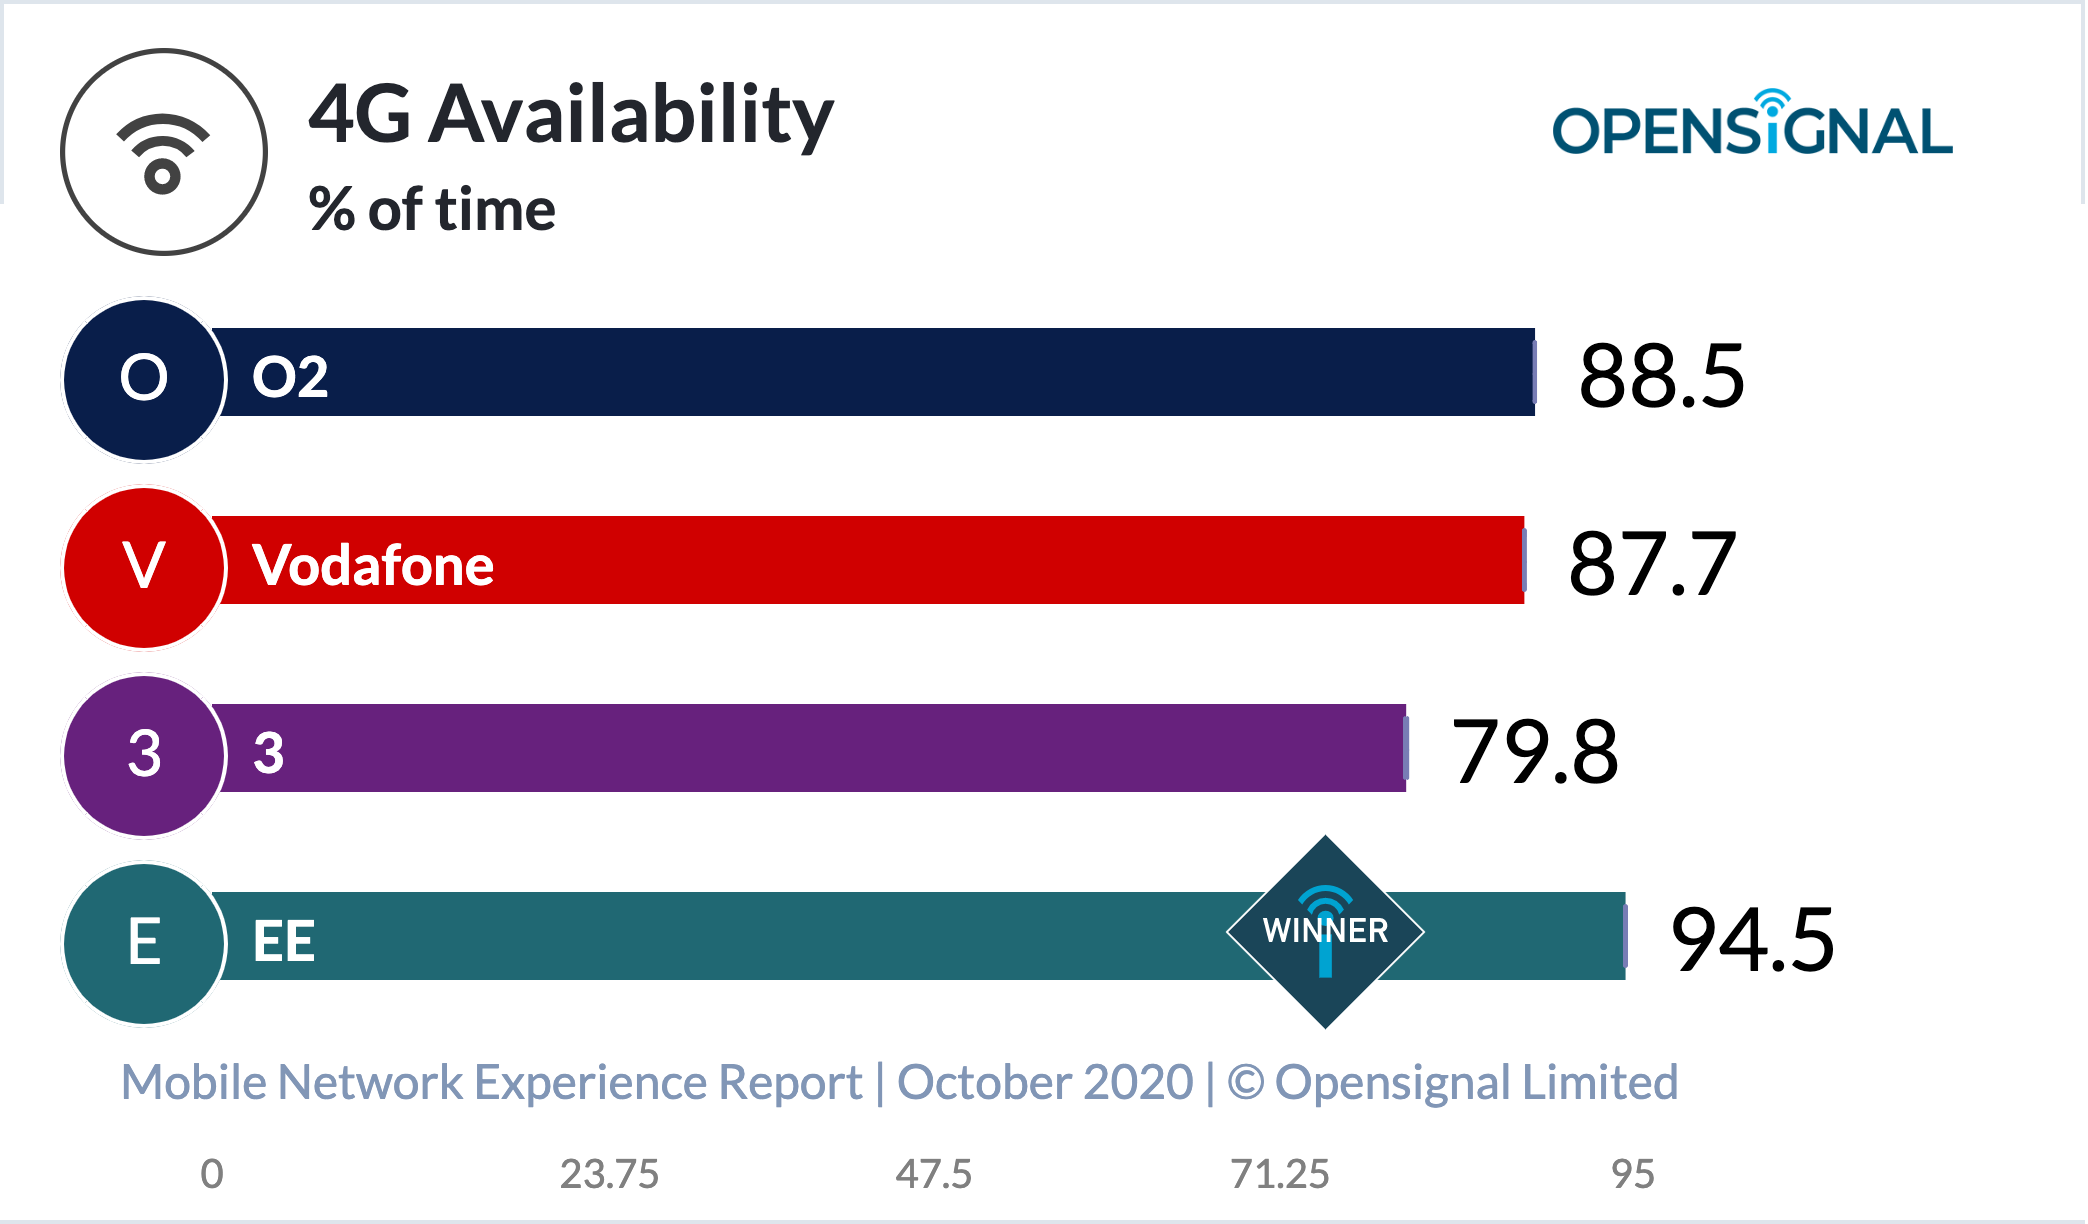 EE network offers best mobile gaming experience in UK - OpenSignal